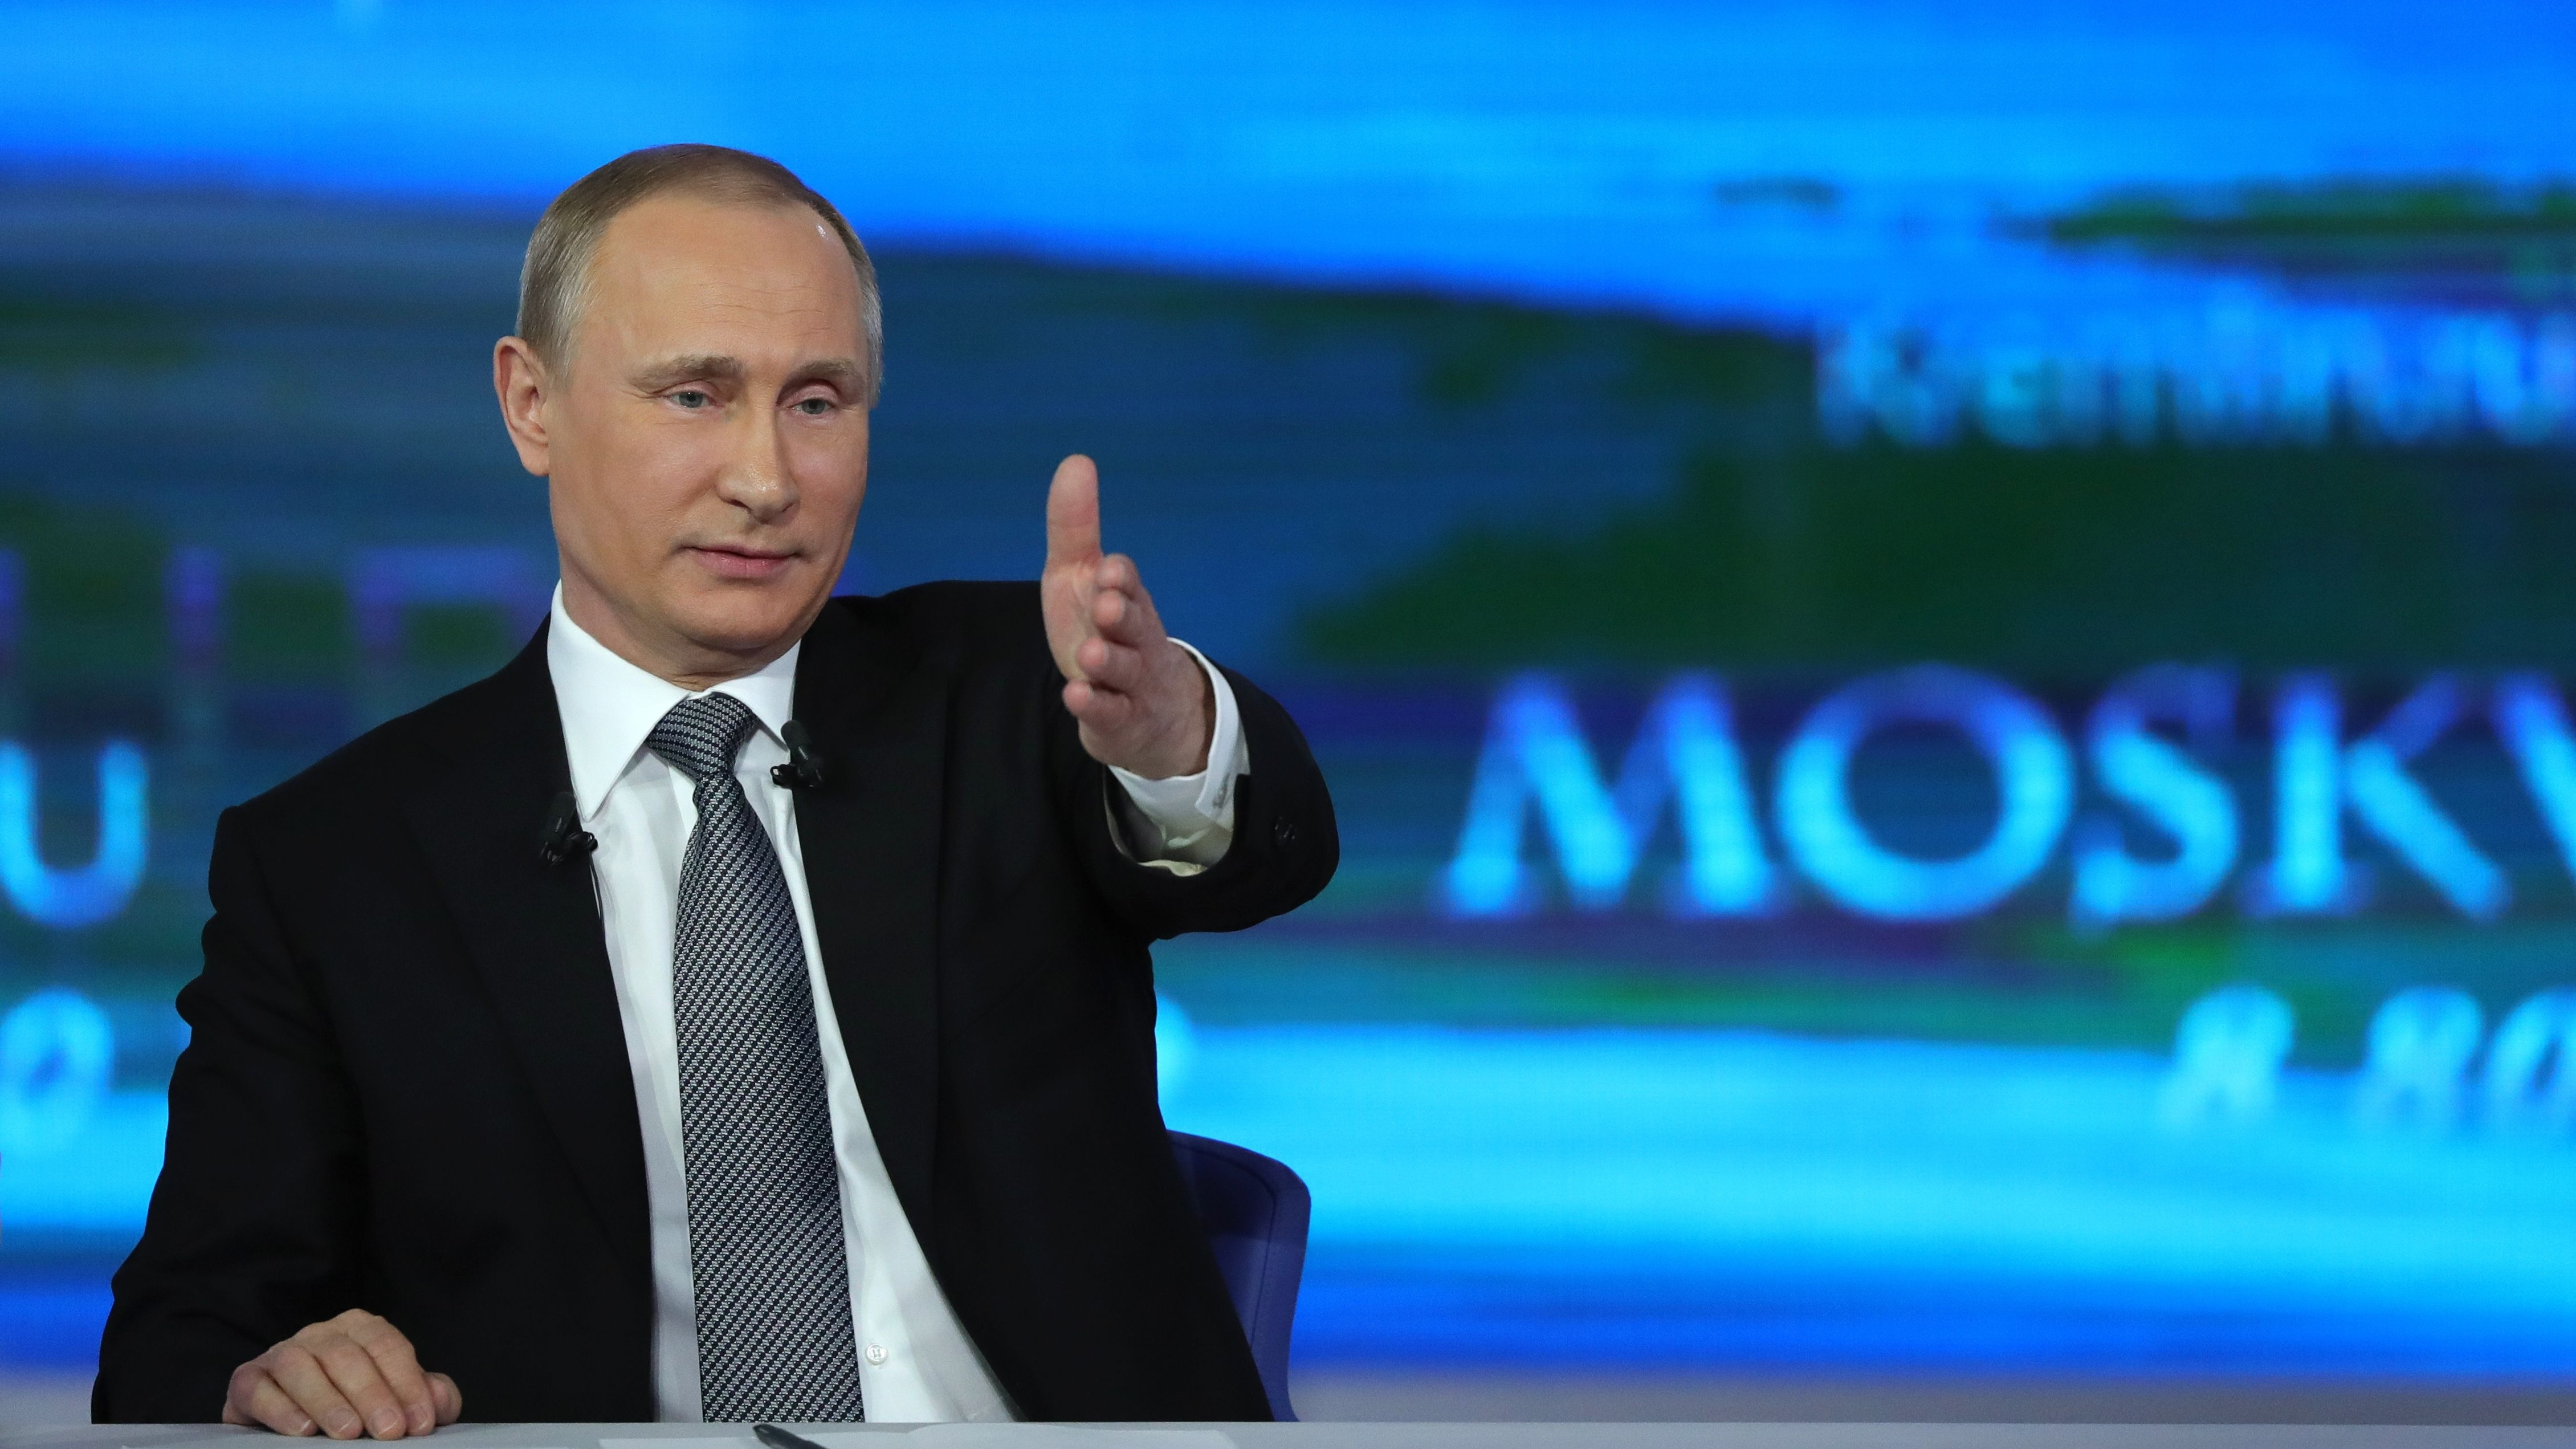 Putin Takes Questions From Russian Public In Annual Call-In Show